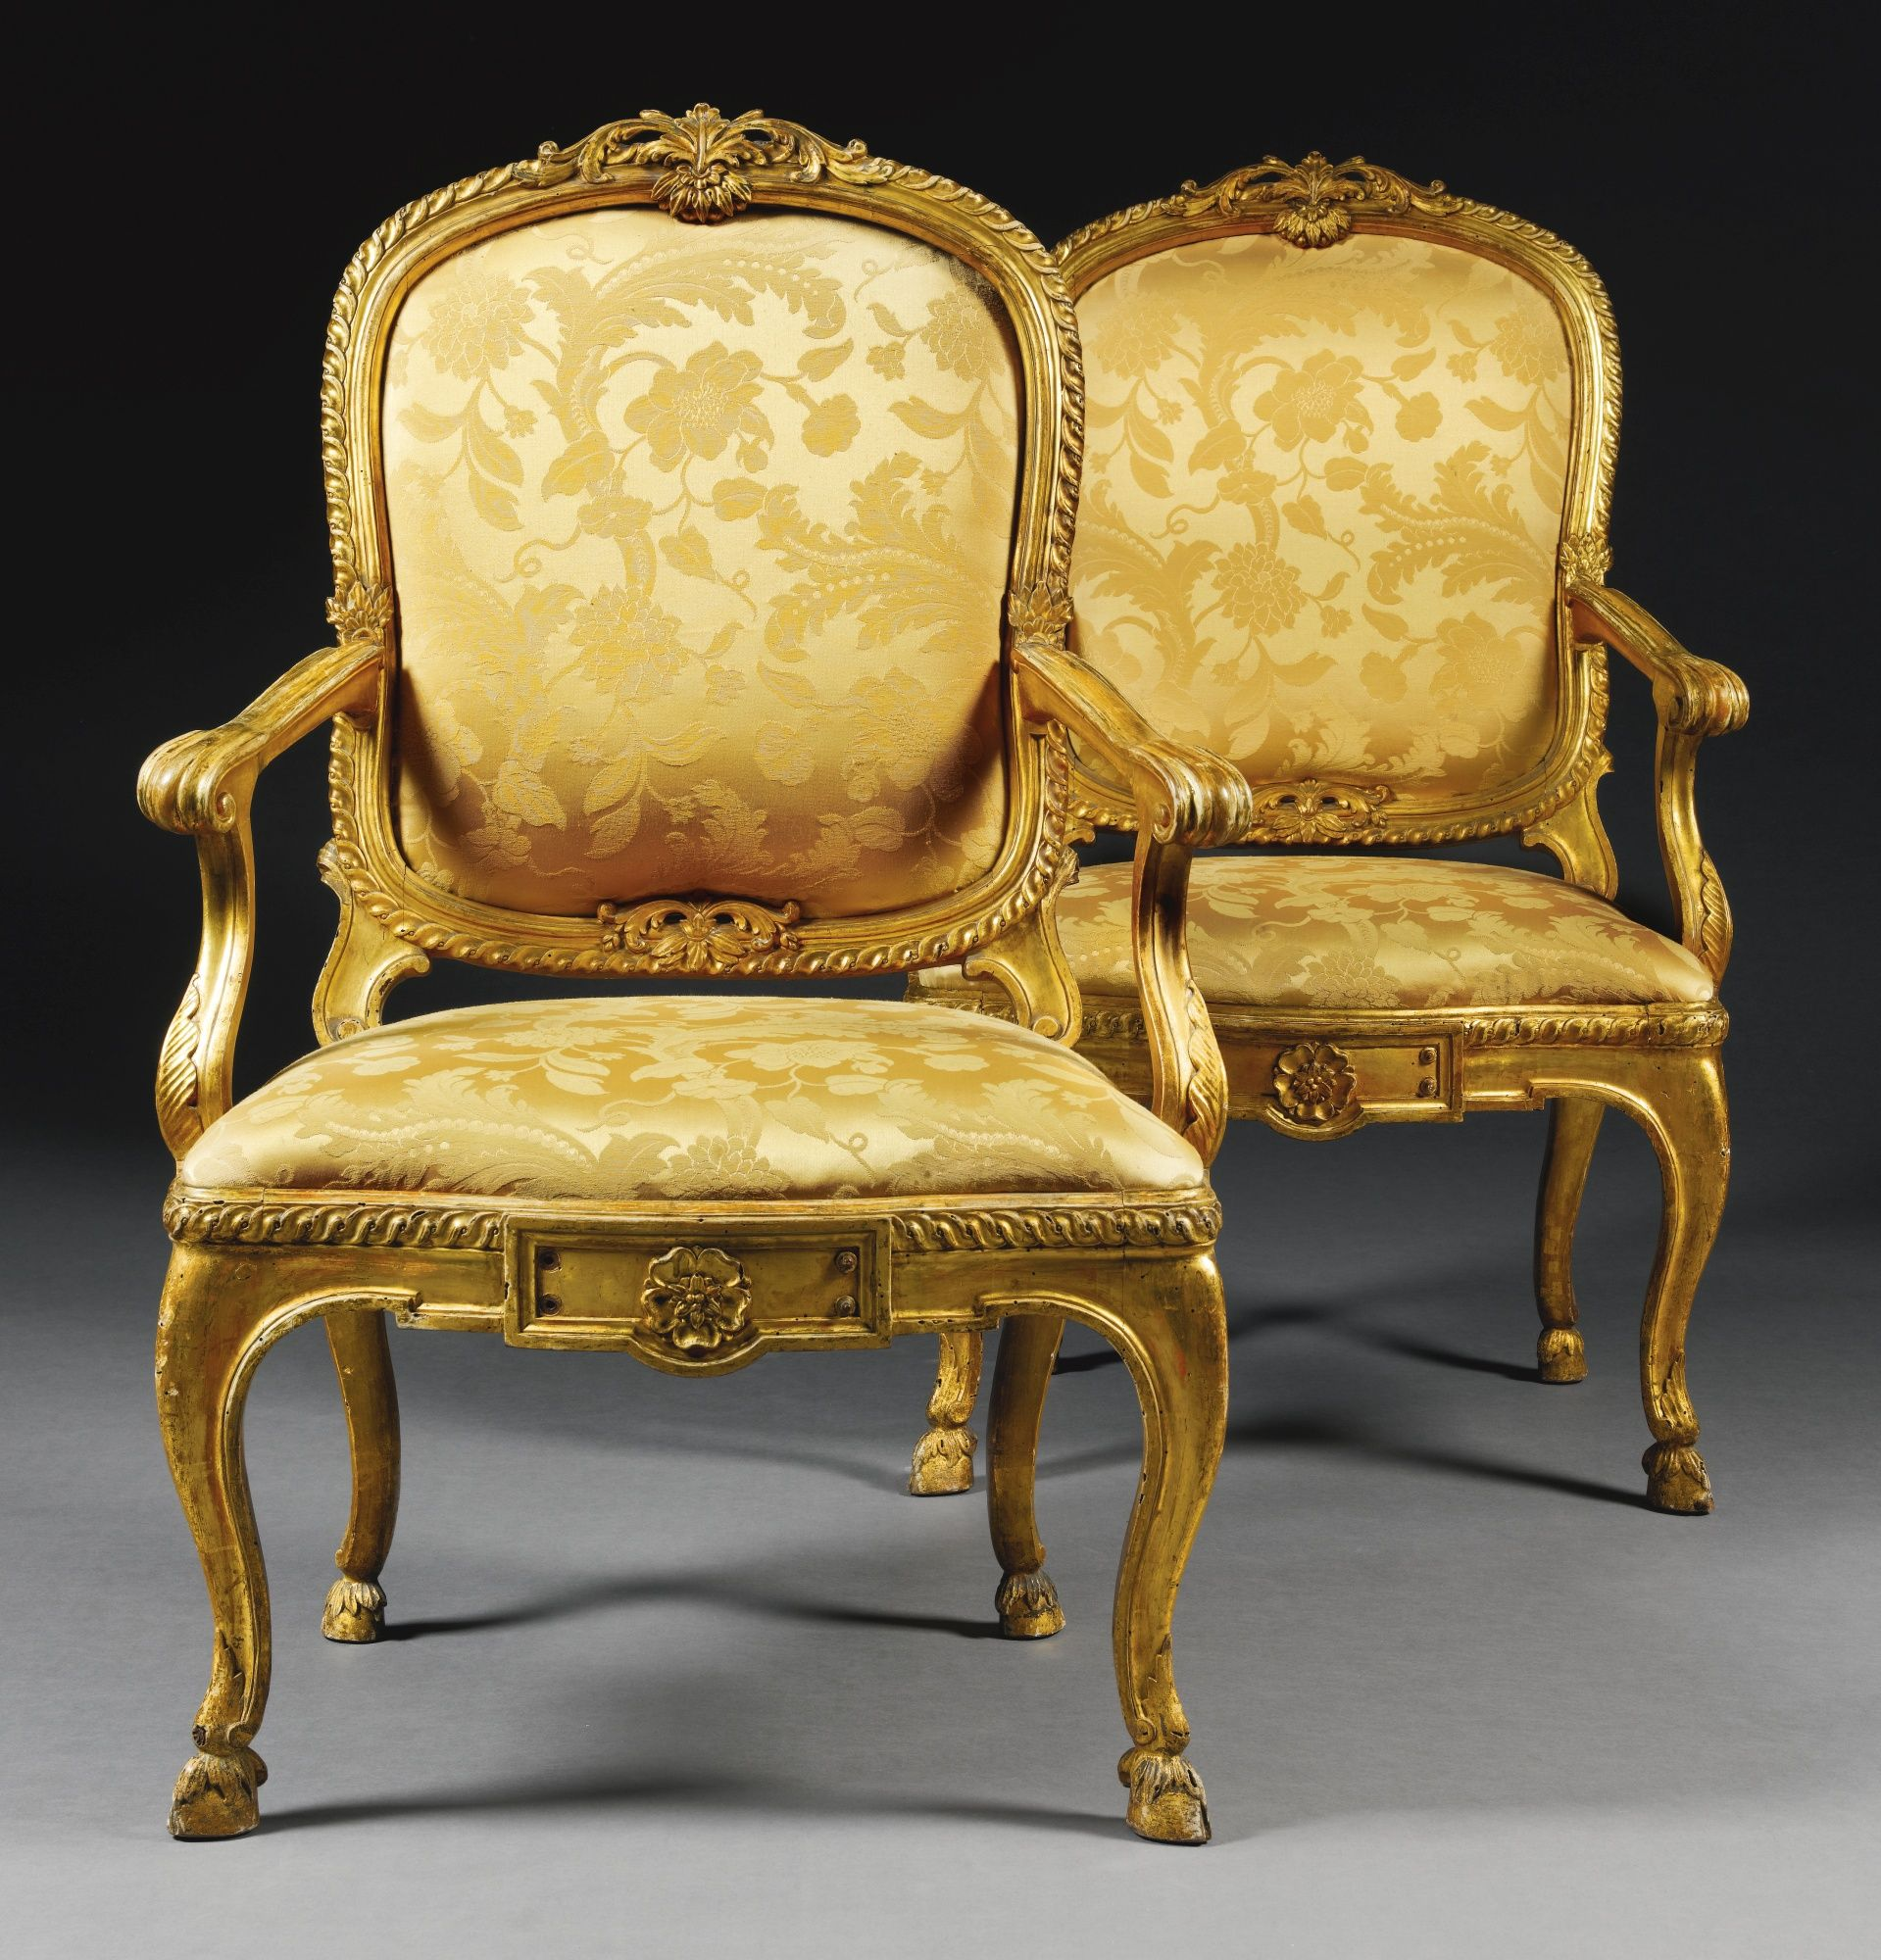 Antique italian chairs - Antique Furniture A Pair Of Italian Carved Giltwood Armchairs Rome Circa 1770 Each With A Cartouche